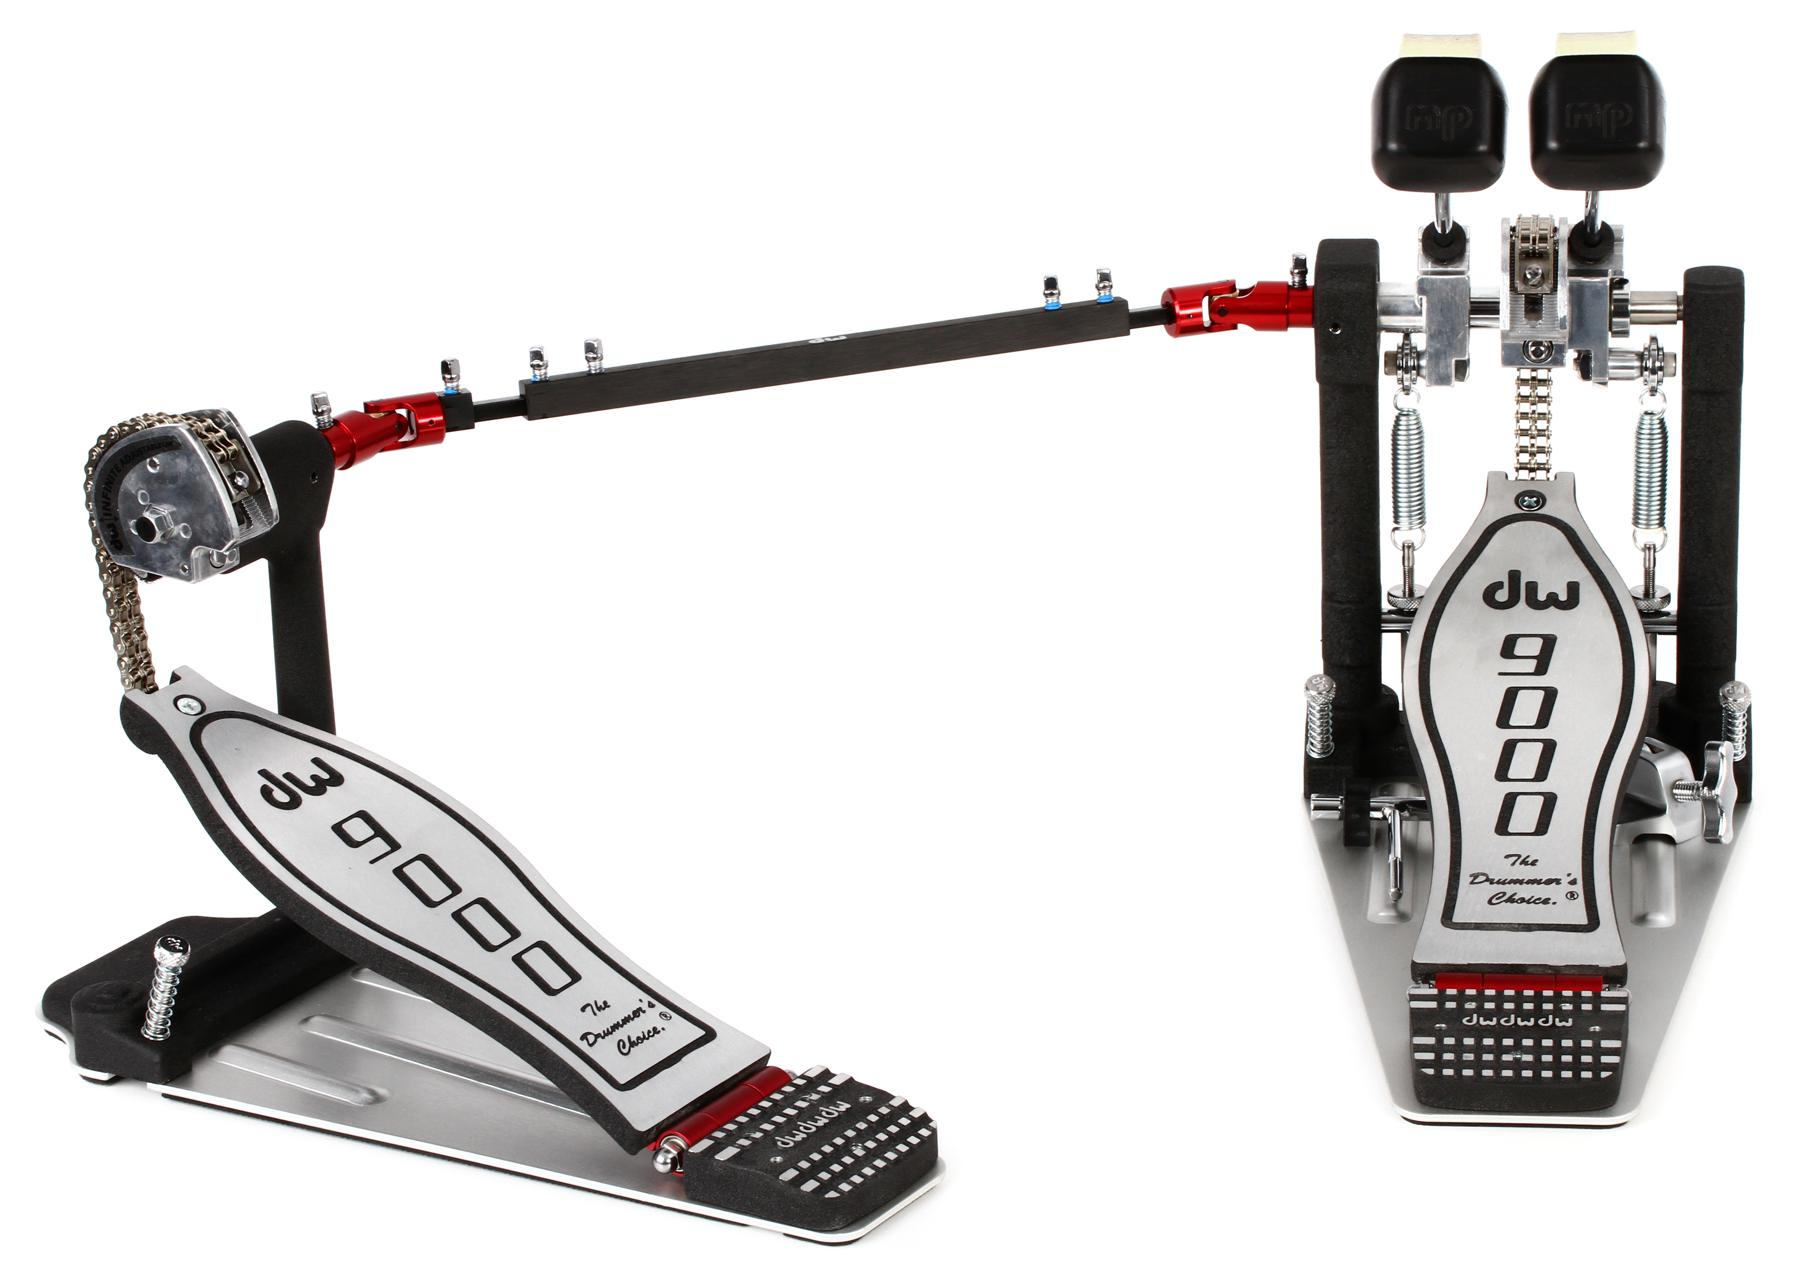 4. DW 9000 Double Bass Pedal